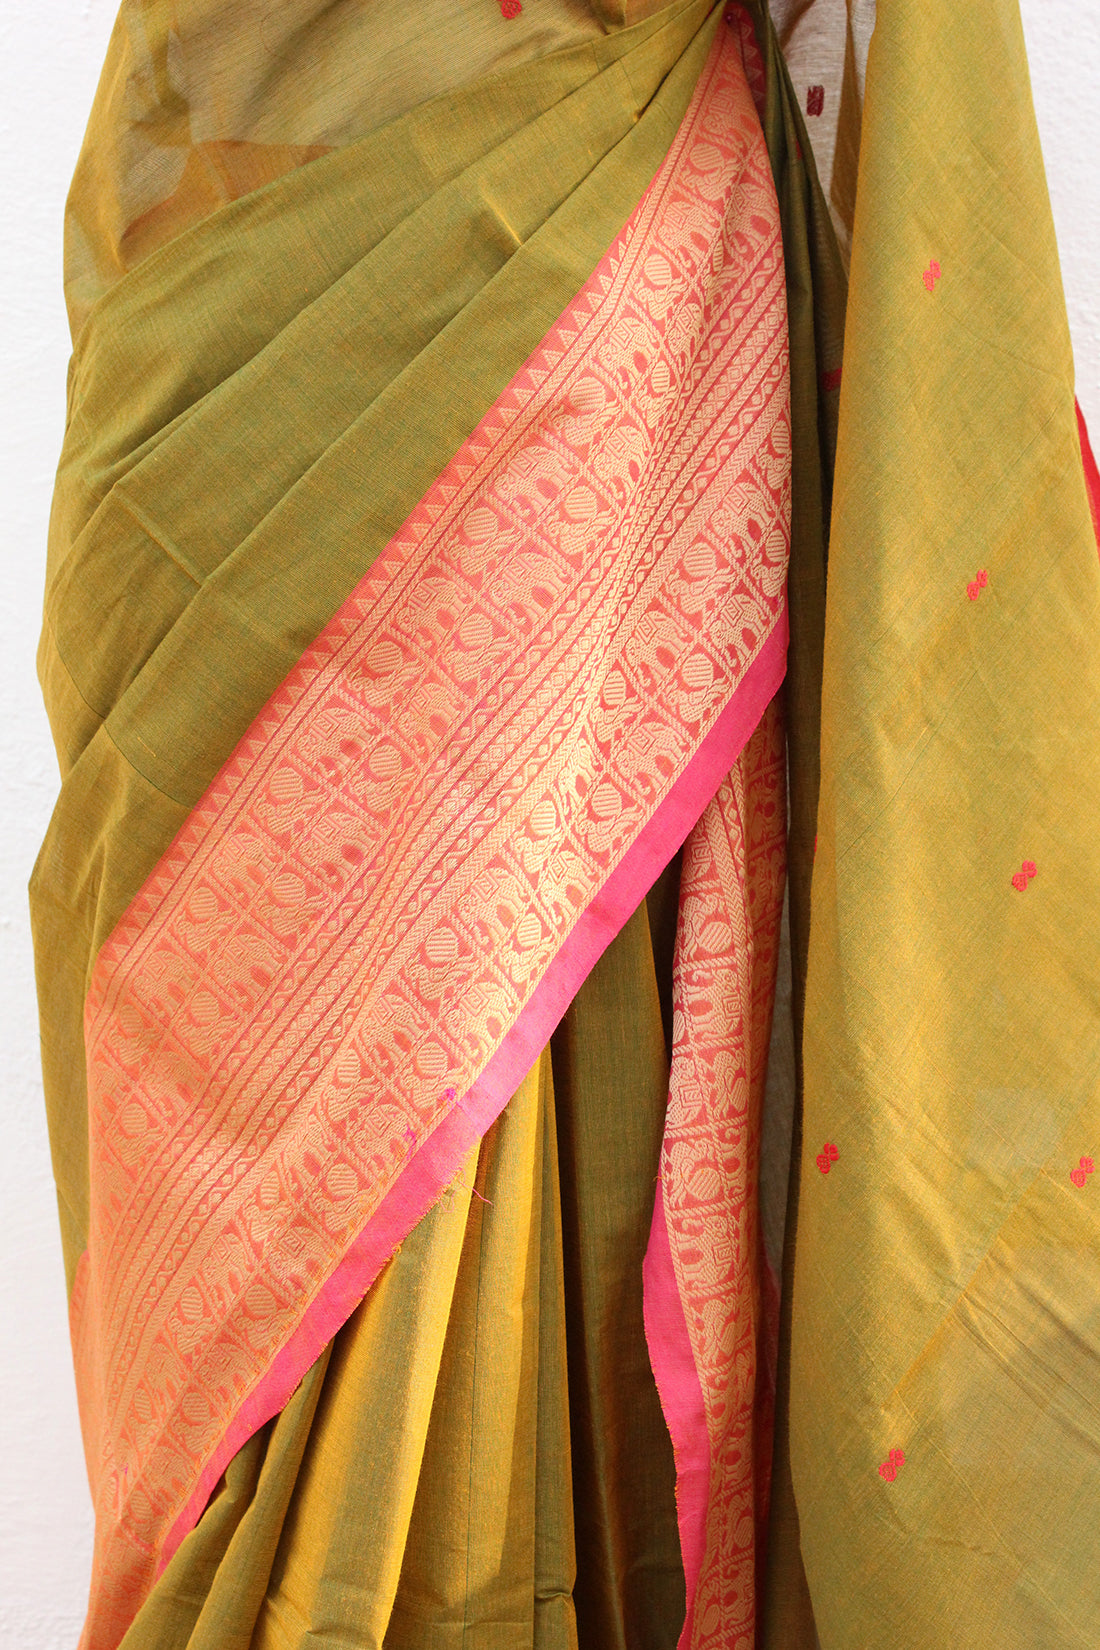 Green and Yellow Dual Toned Chettinad Cotton Saree With Pink Handloom South Cotton Blouse Piece